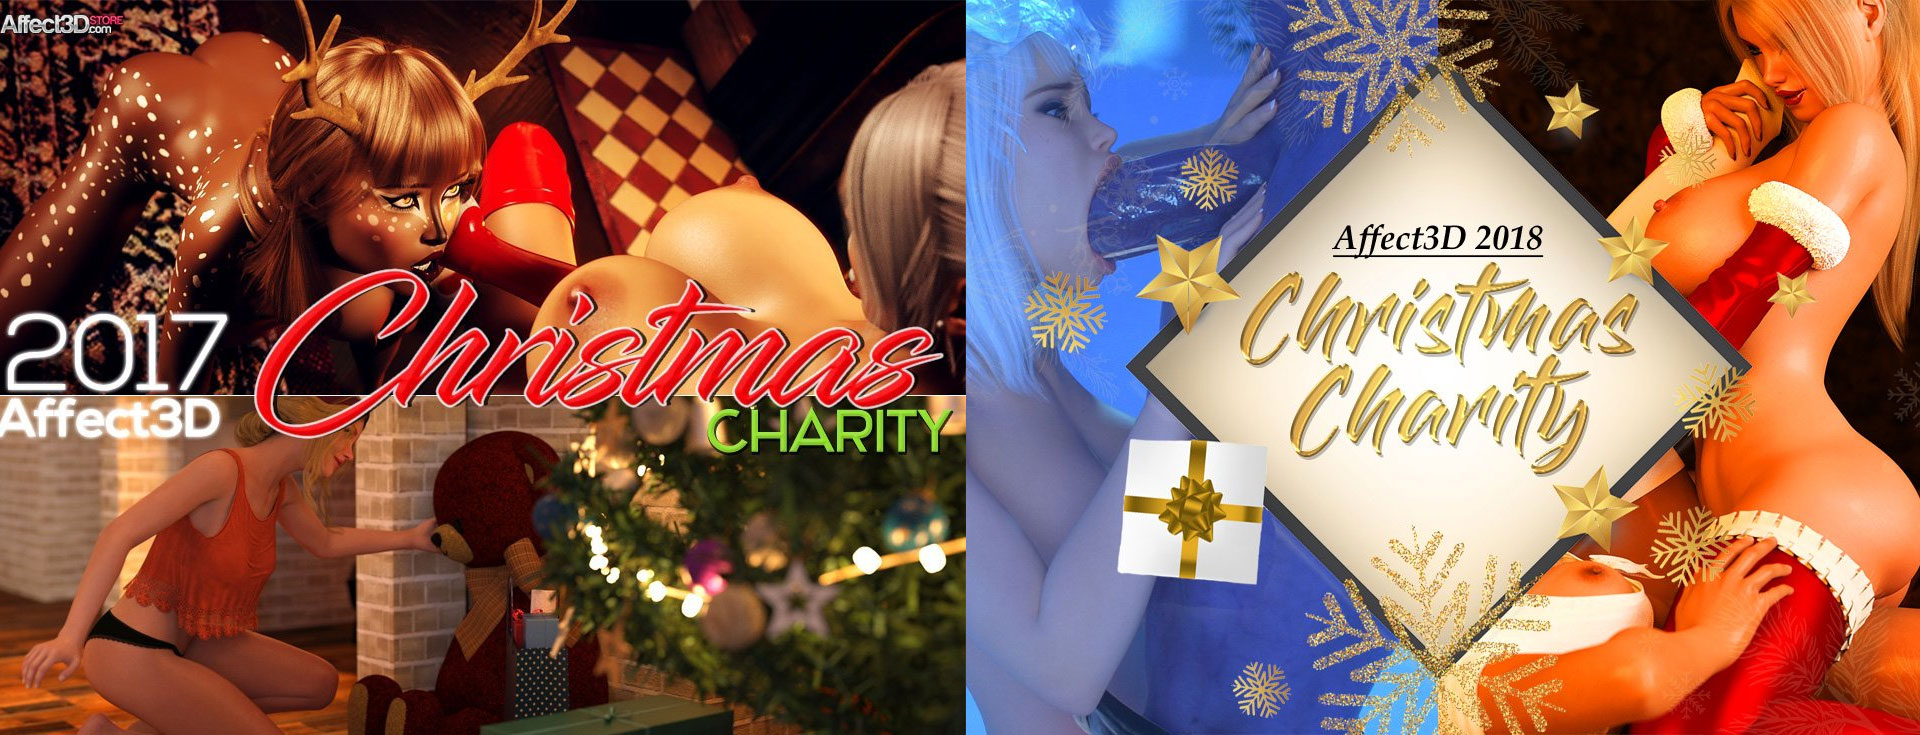 Affect3D Christmas Charity Sets